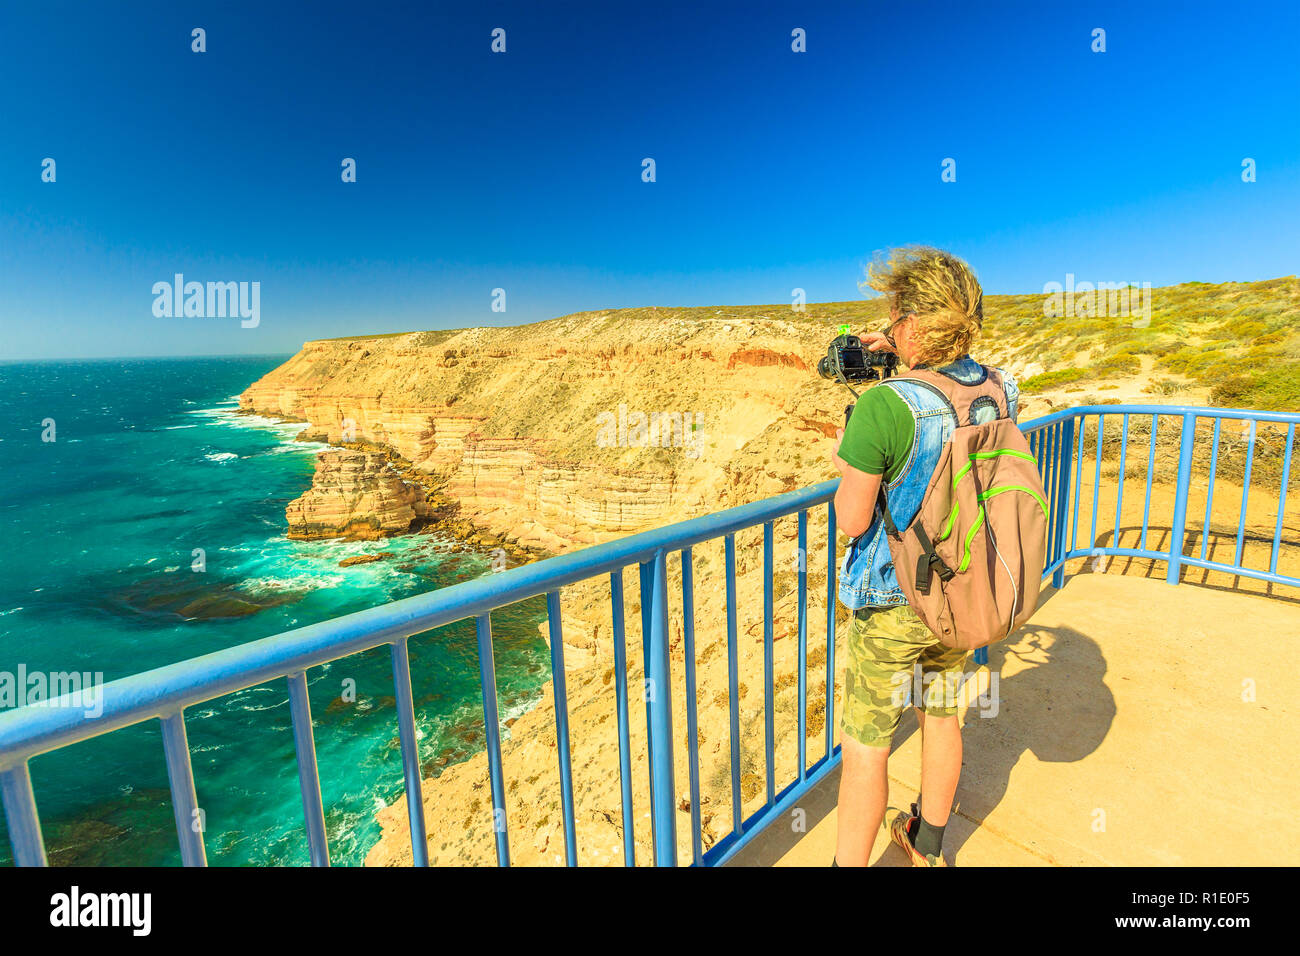 Travel photographer with stabilizer takes shot of Natural Bridge lookout in Kalbarri National Park, WA, Australian Outback. Videomaker with professional camera takes photo of Indian Ocean cliffs. - Stock Image